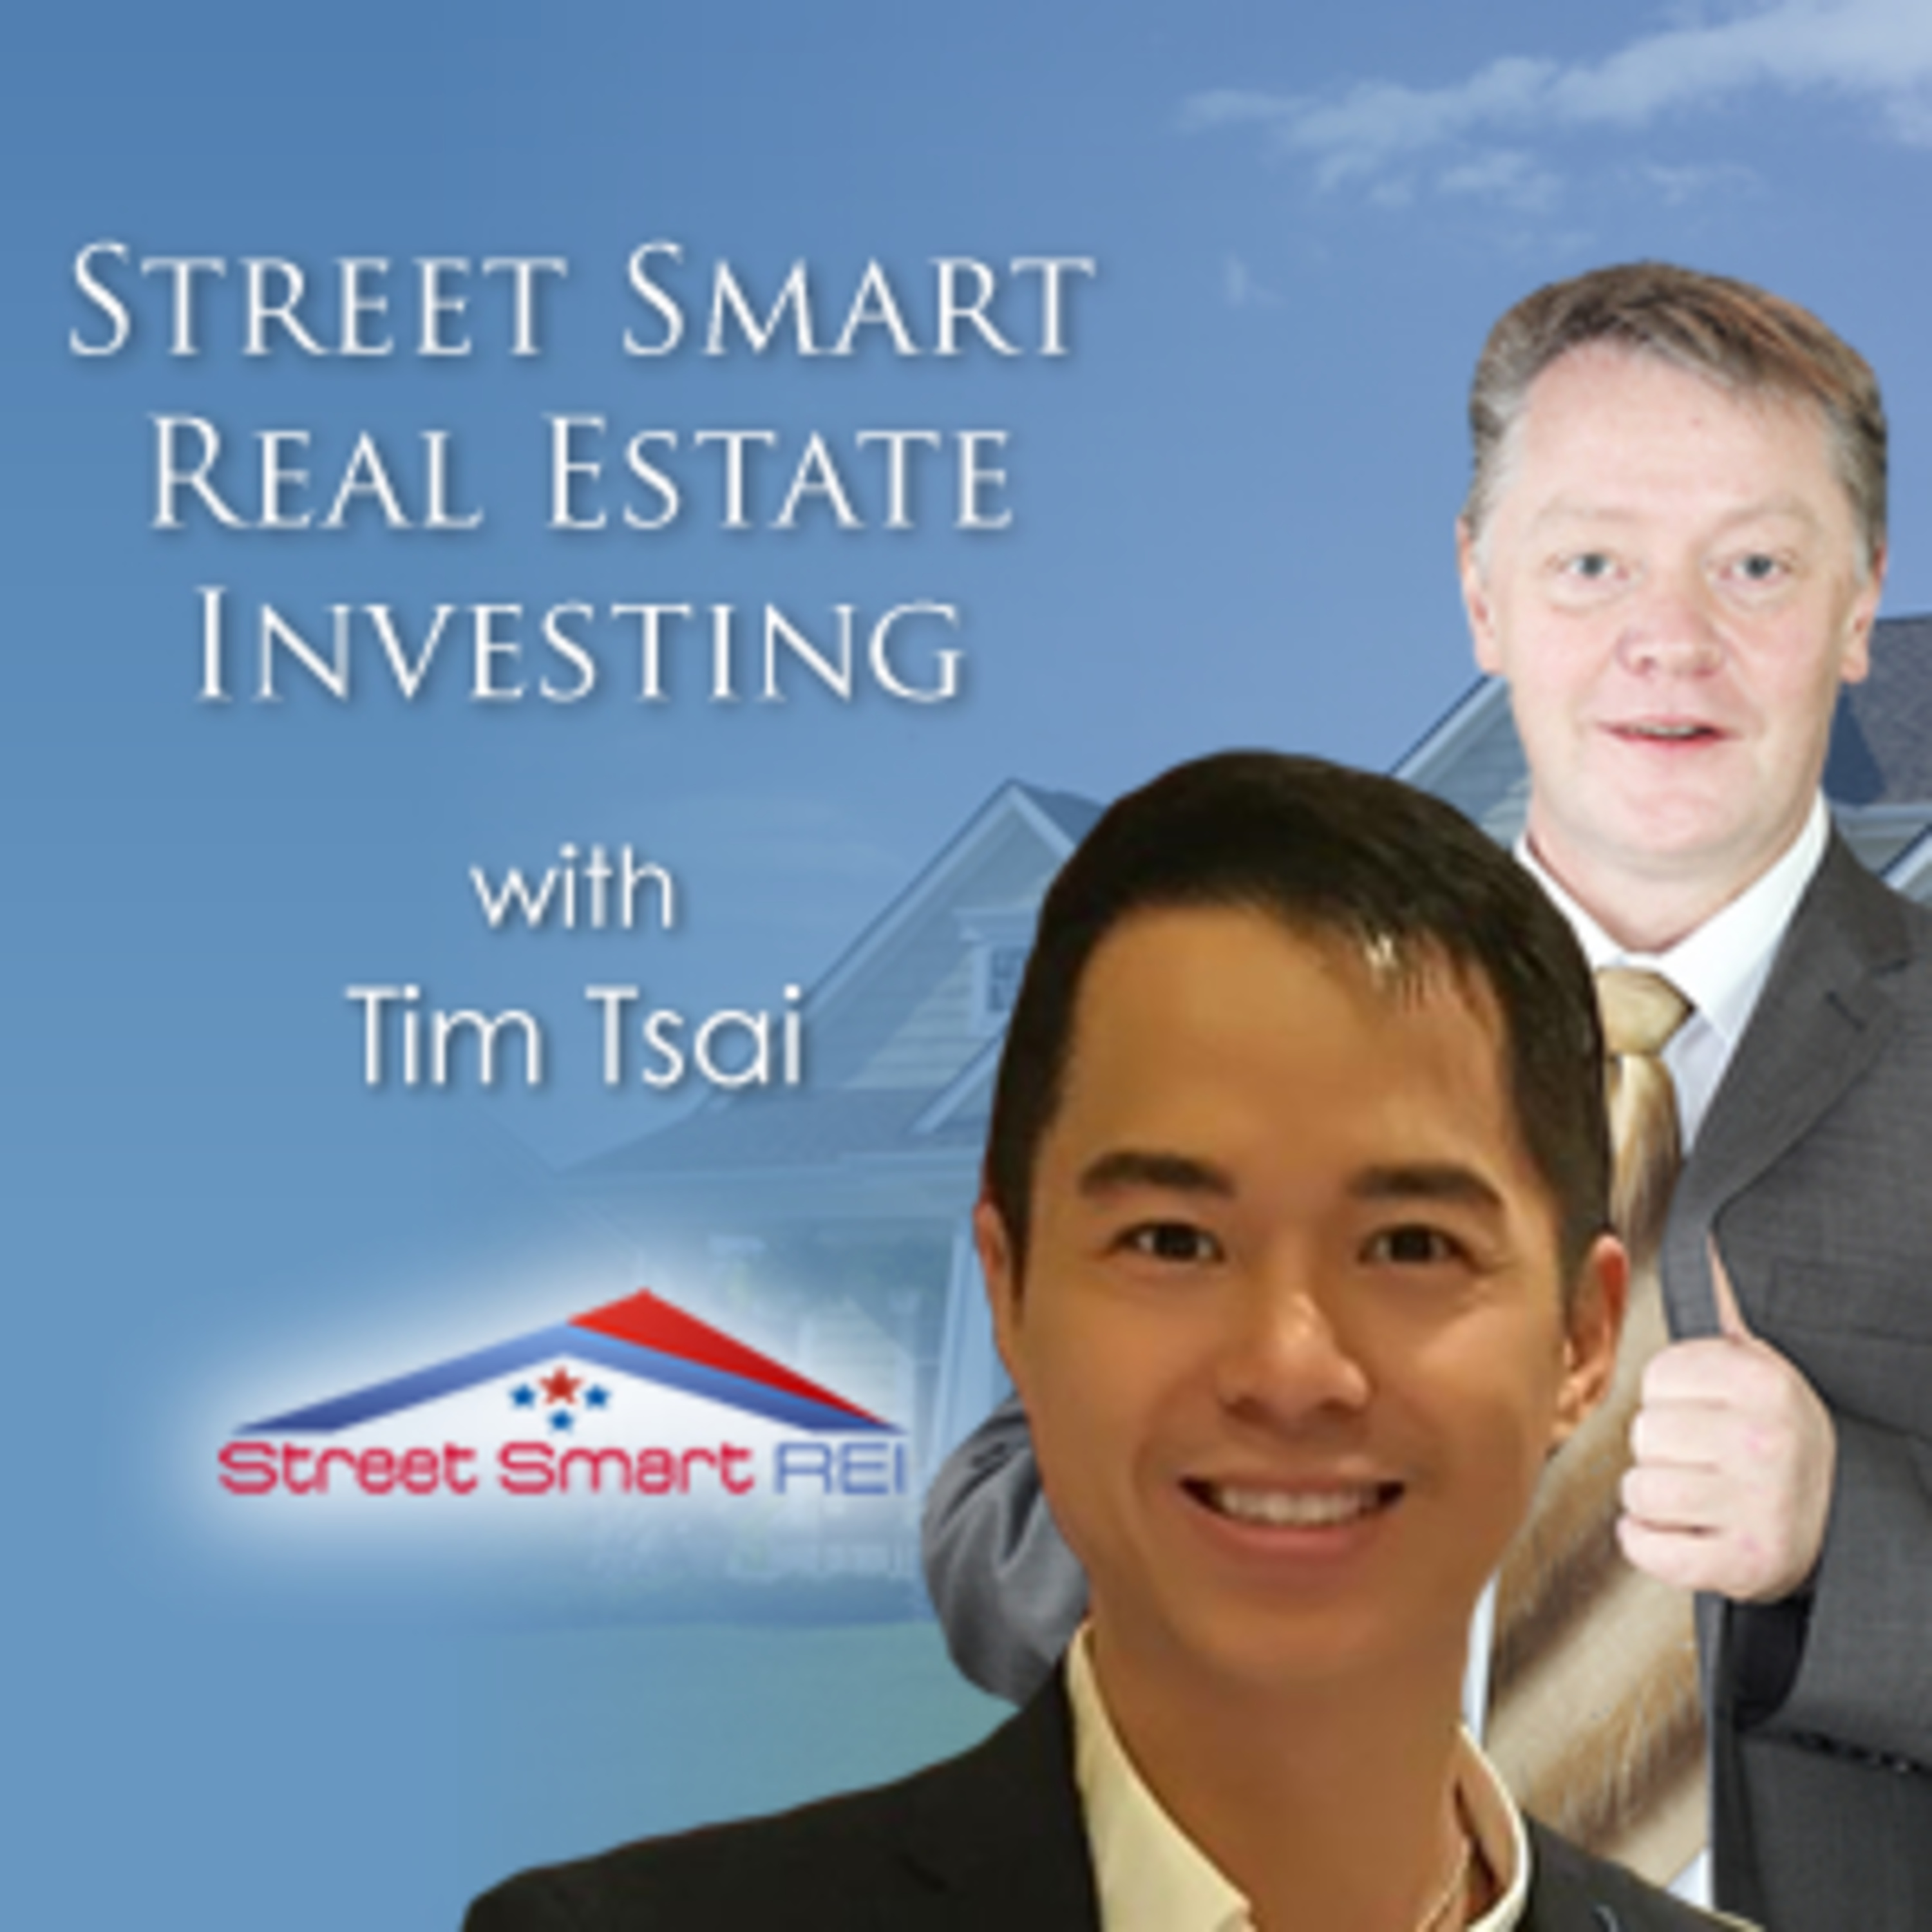 Tim Tsai, Young Real Estate Investor with Huge Vision and Heart....